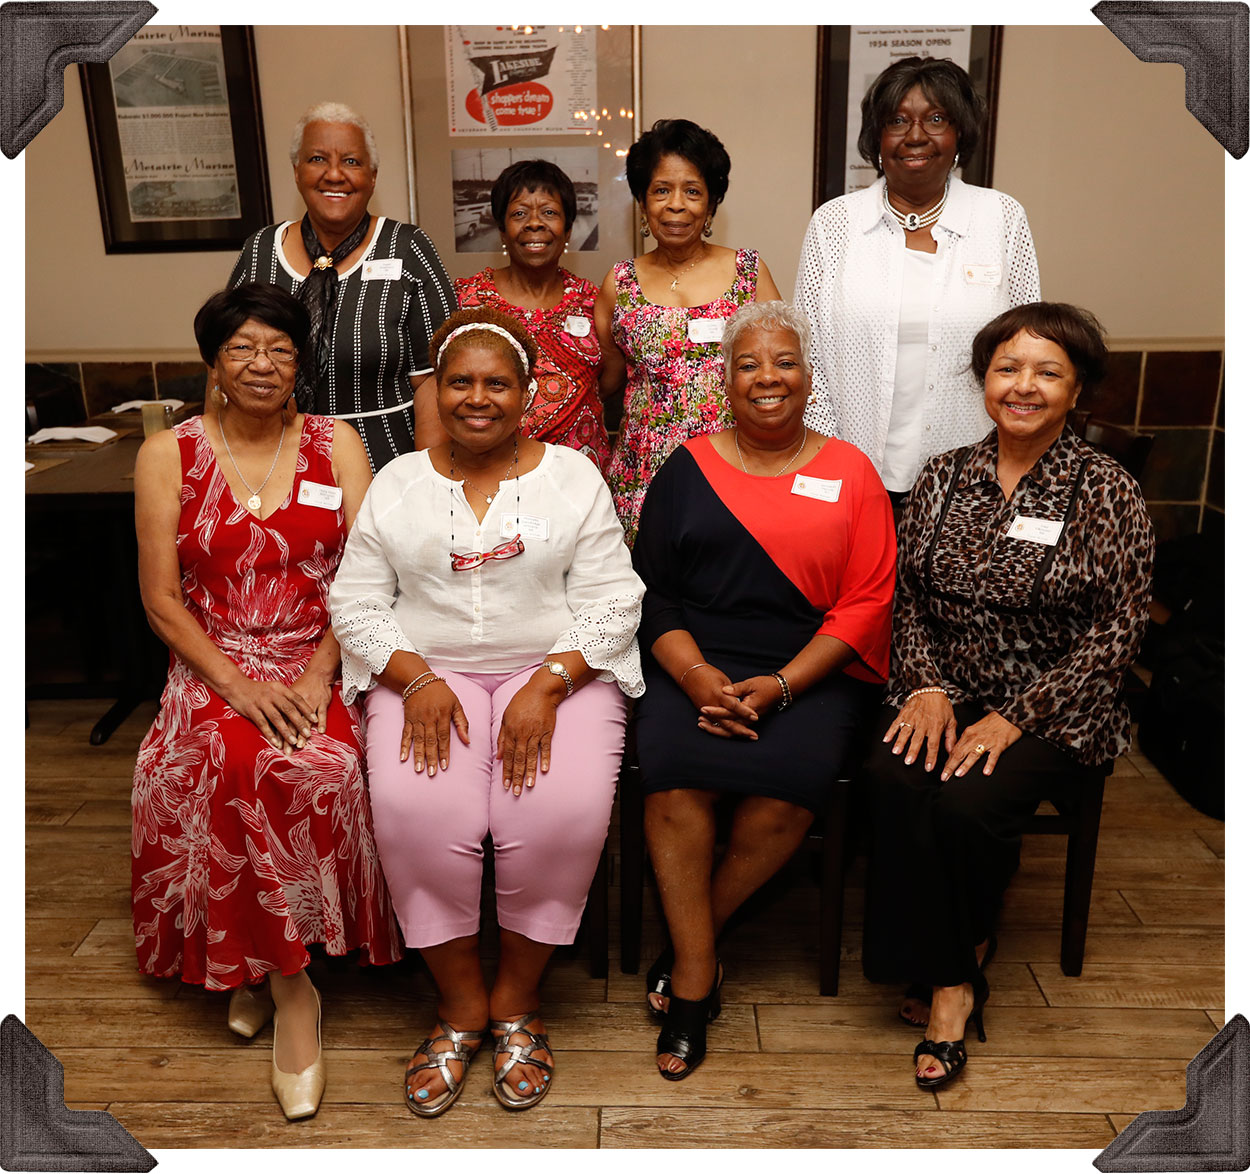 Class of '68 - Standing: Gwendolyn Shepherd, Cecile Scorza, Elaine Stovall and Joyce Armstead  -- Seated:  Mary Alice Billington, Marcella Williams, Jerrylean Merridy and Inez Villavaso